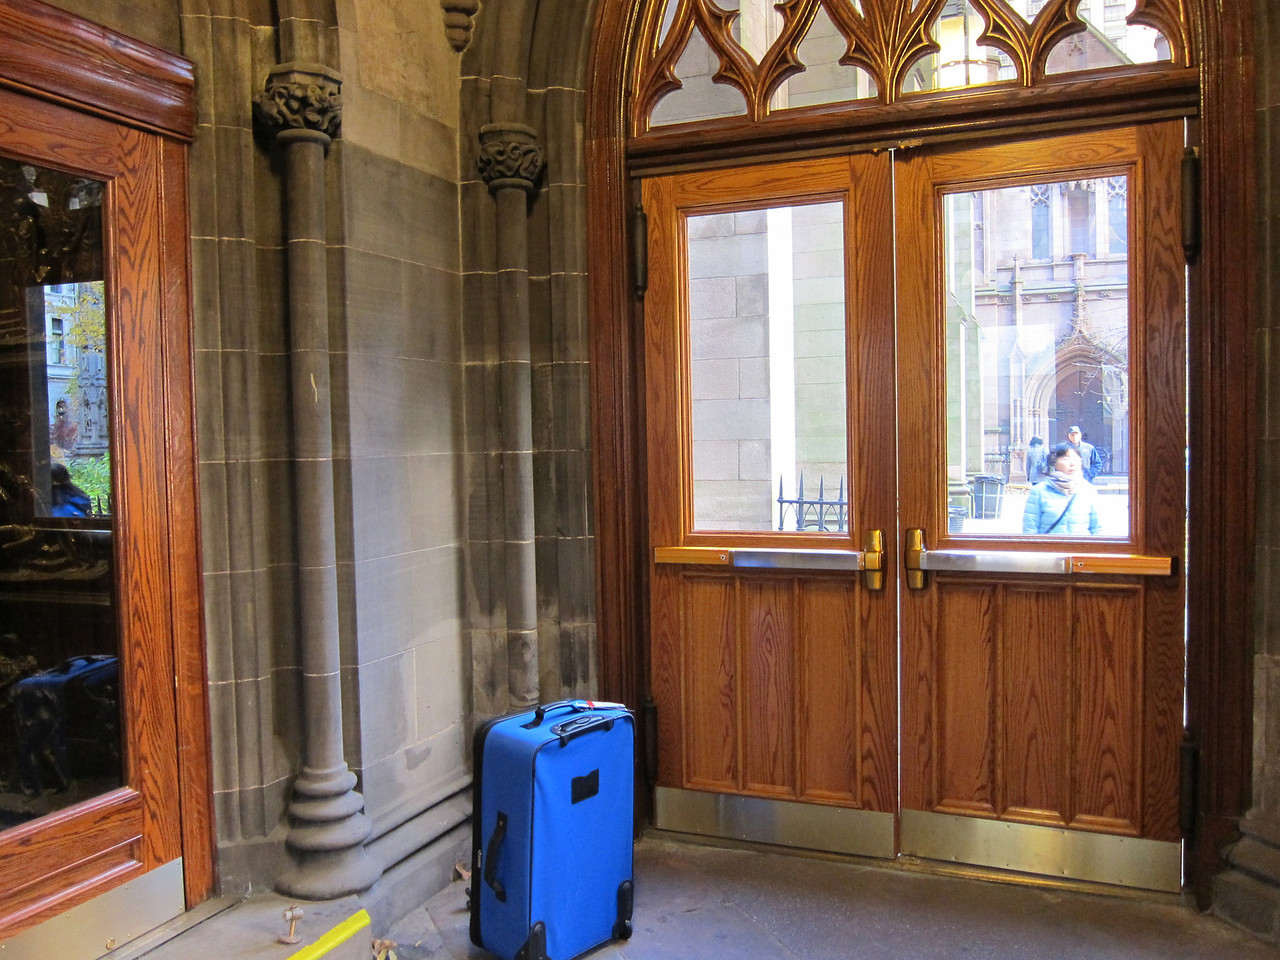 xTrinity Wall Street Church_2013-11-20_4661_north entryway vestibule, church entrance on left